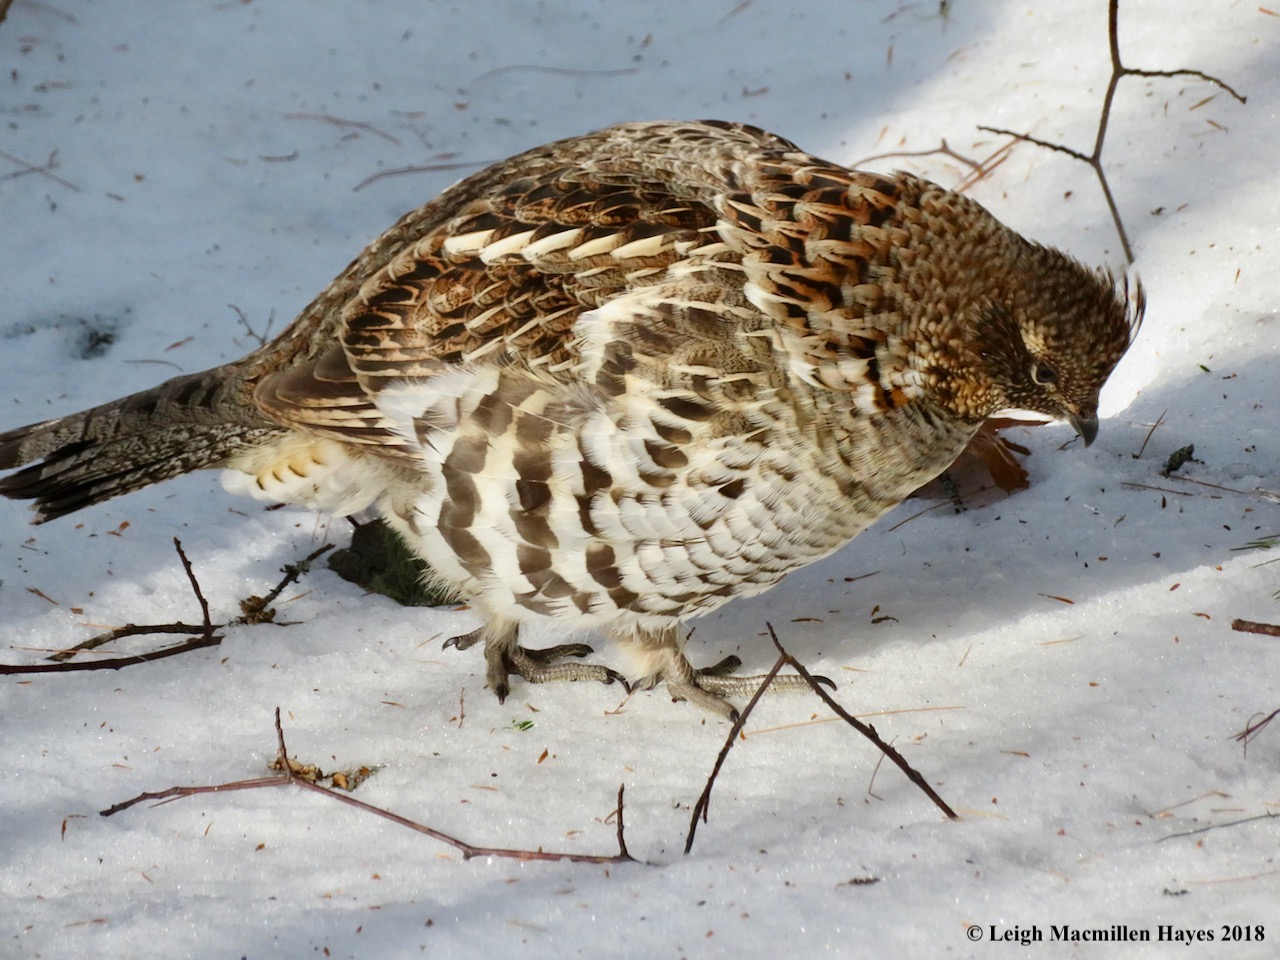 ArGee as last seen a few weeks ago. A ruffed grouse startled me in the same area yesterday. Was it him? Or another? I'm not sure, but I am grateful that it behaved as a ruffed grouse should by flying off